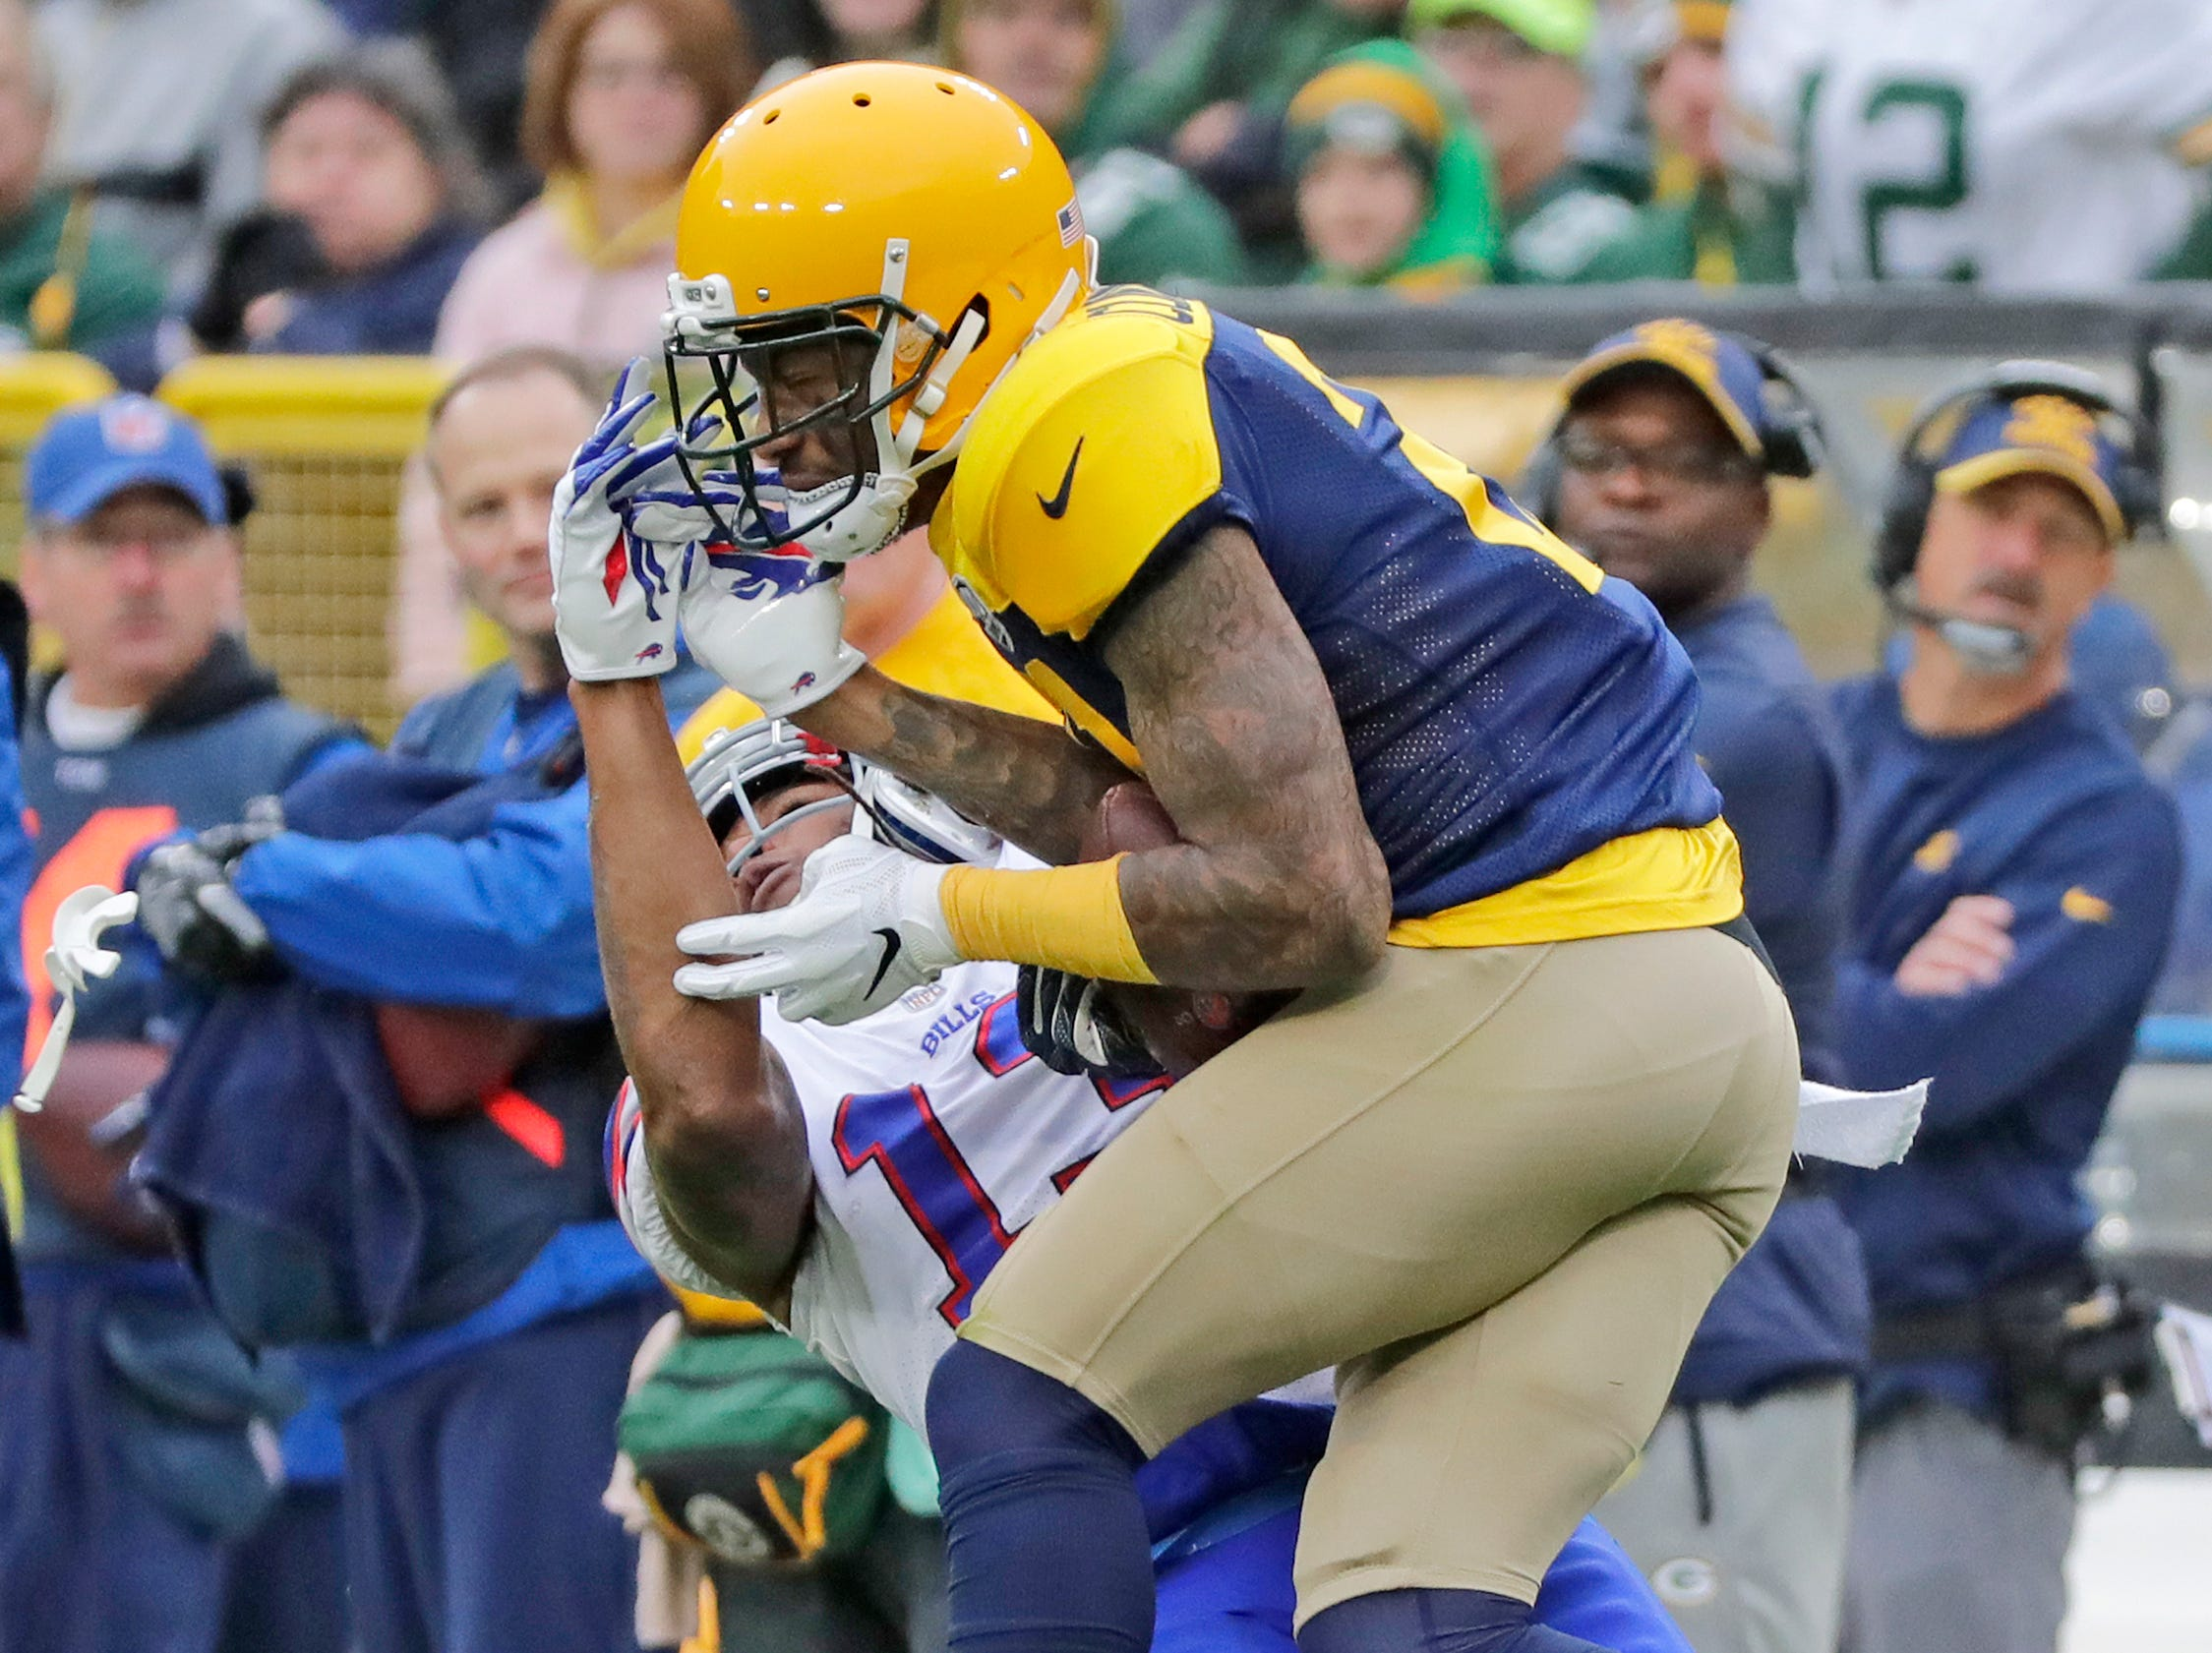 Green Bay Packers defensive back Ha Ha Clinton-Dix (21) intercepts a pass intended for Buffalo Bills wide receiver Kelvin Benjamin (13) in the third quarter at Lambeau Field on Sunday, September 30, 2018 in Green Bay, Wis.Adam Wesley/USA TODAY NETWORK-Wisconsin